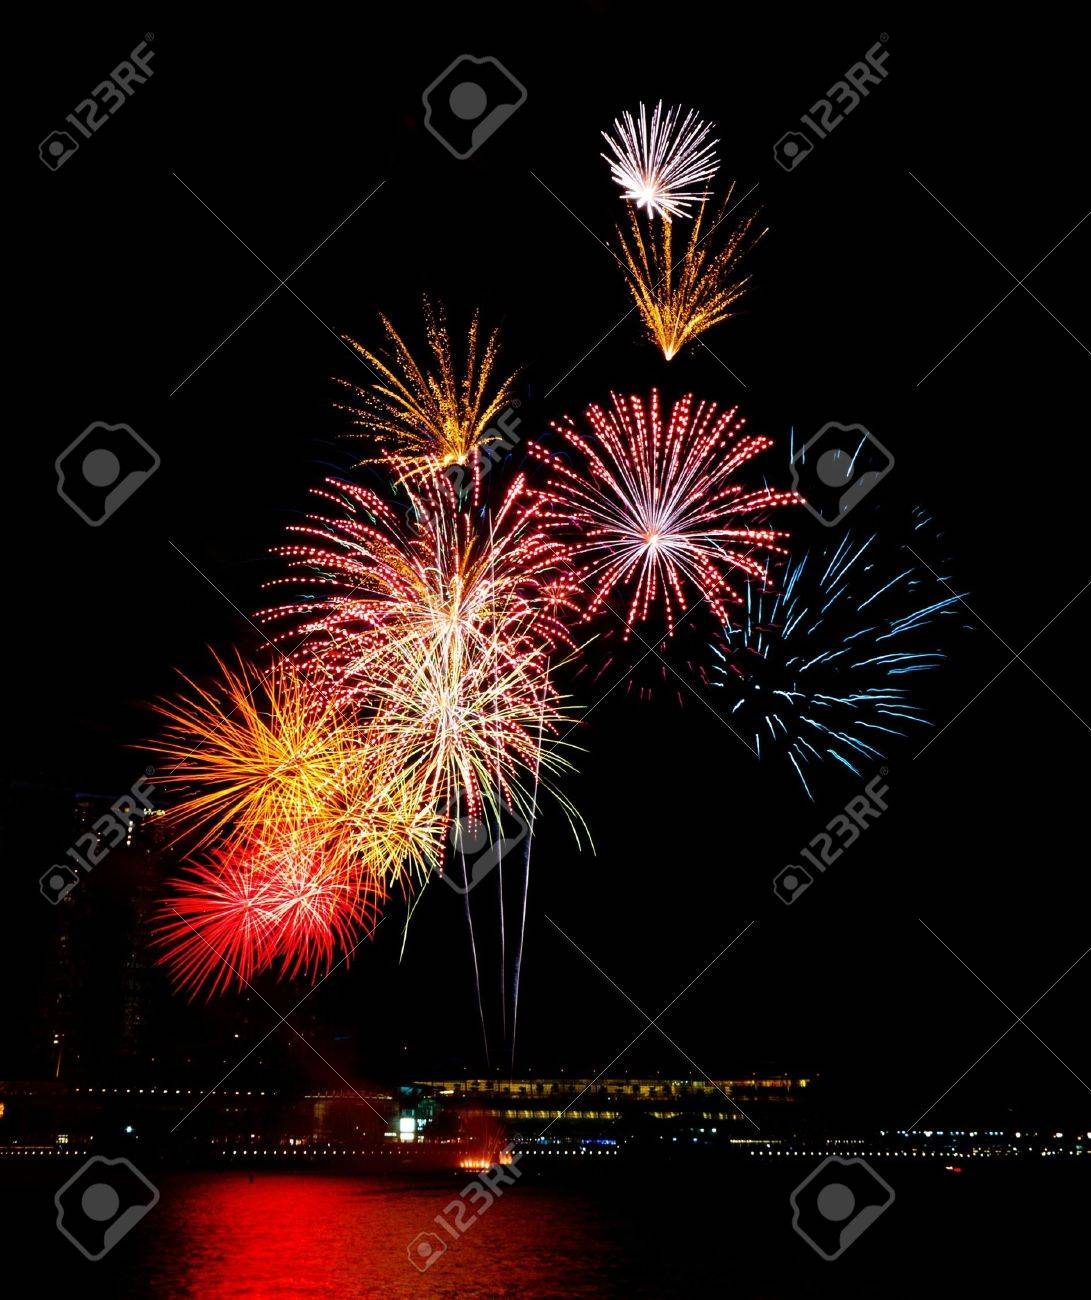 Colorful bursts of fireworks light up and decorate the night sky Stock Photo - 10025226